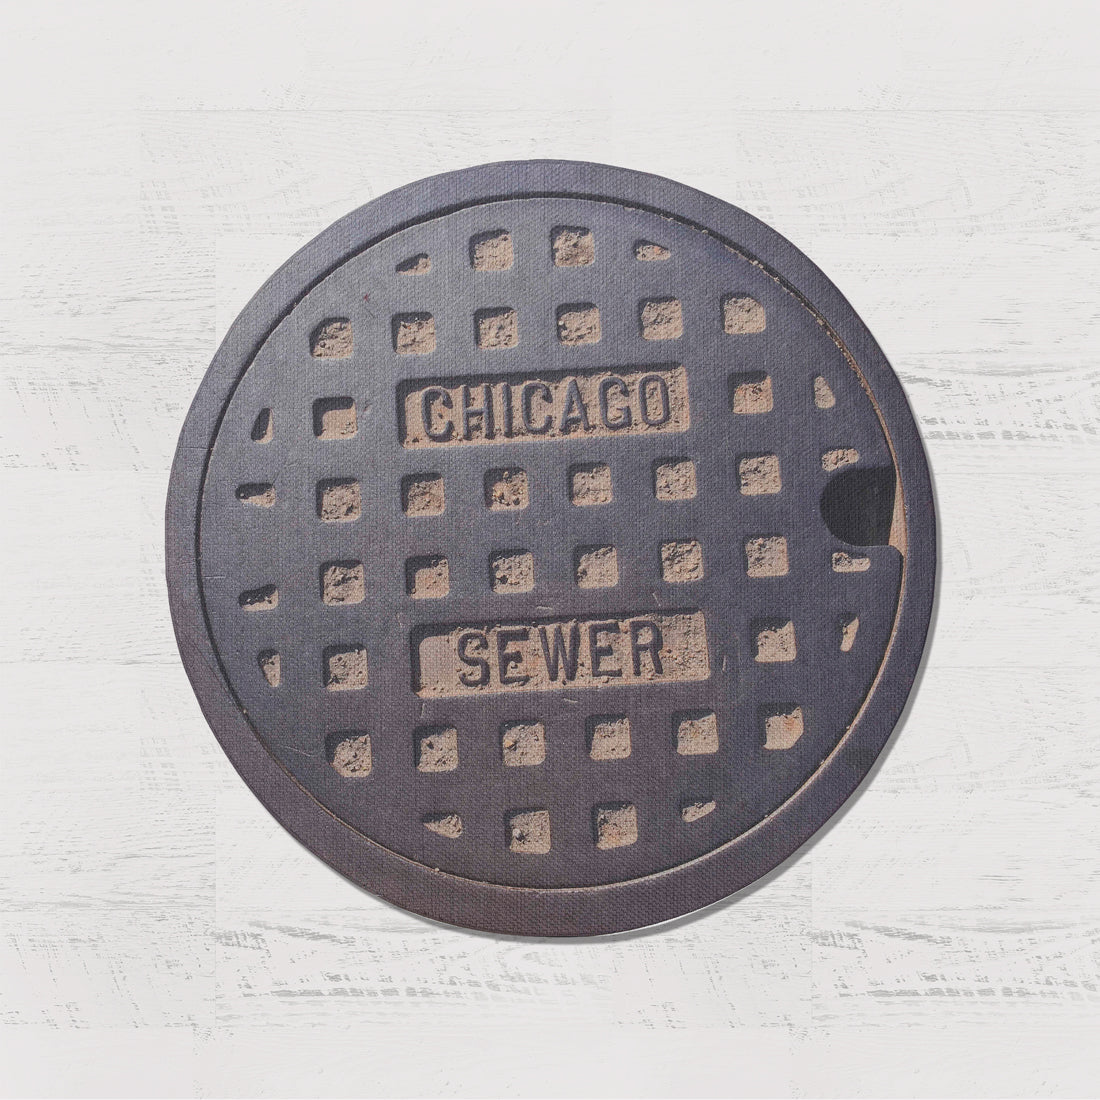 MIDWEST SERIES - Sewer Cover Doormat, Trivet, Coaster - Chicago, IL